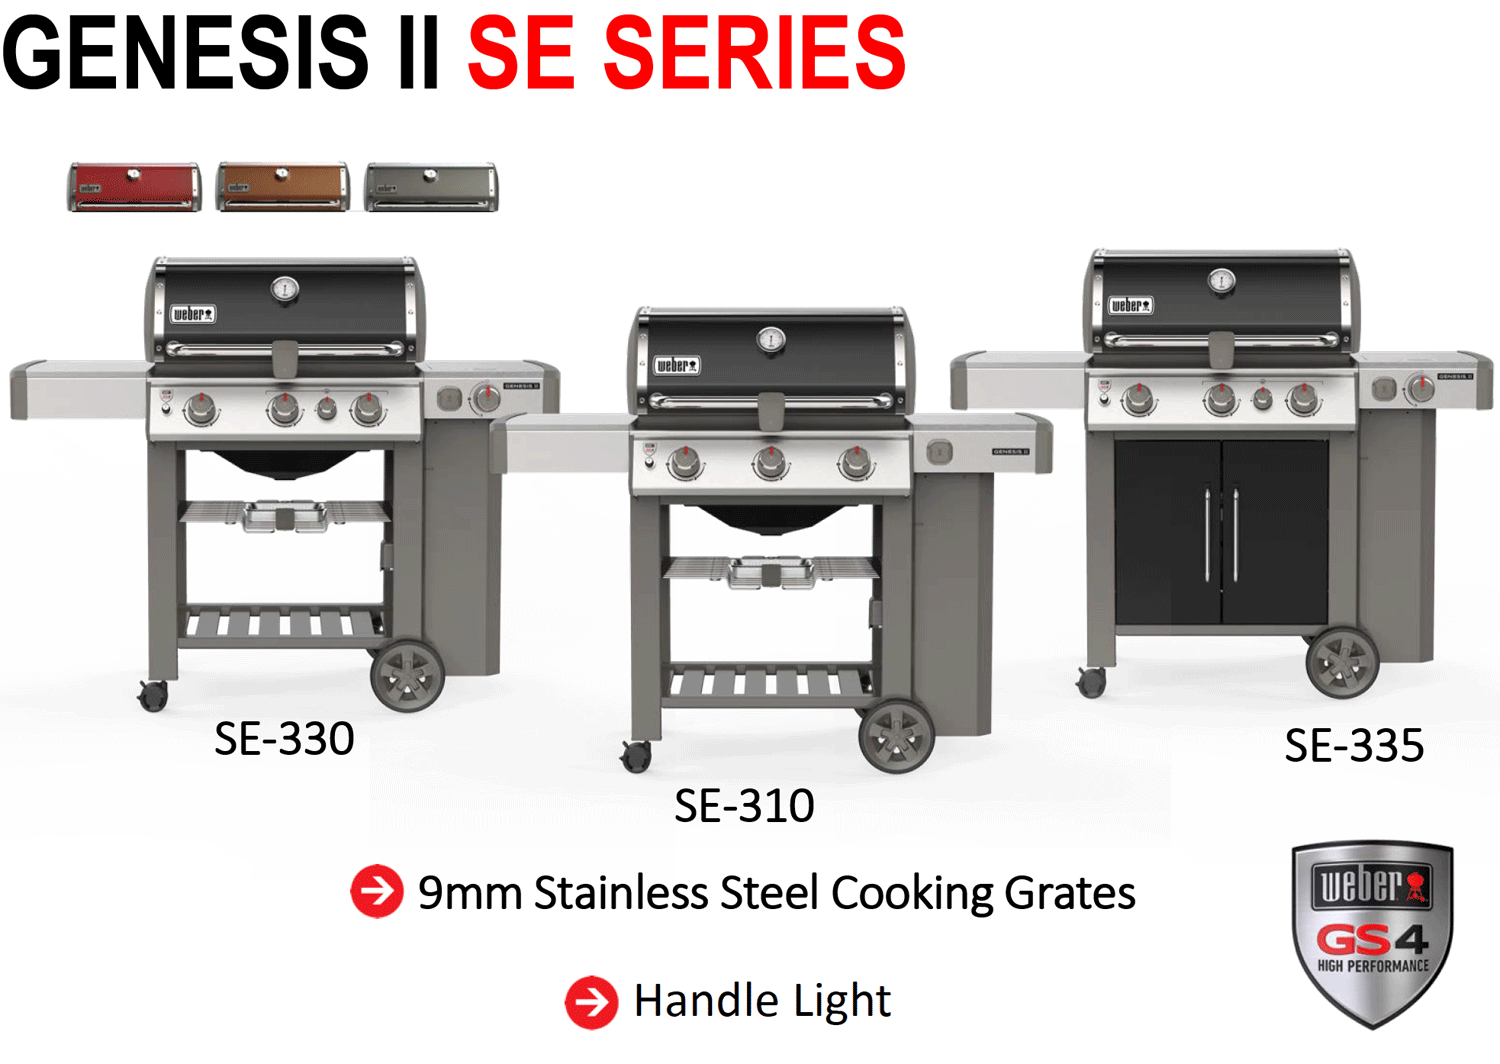 Weber Grills On Sale - Tips on How to Catch a Deal